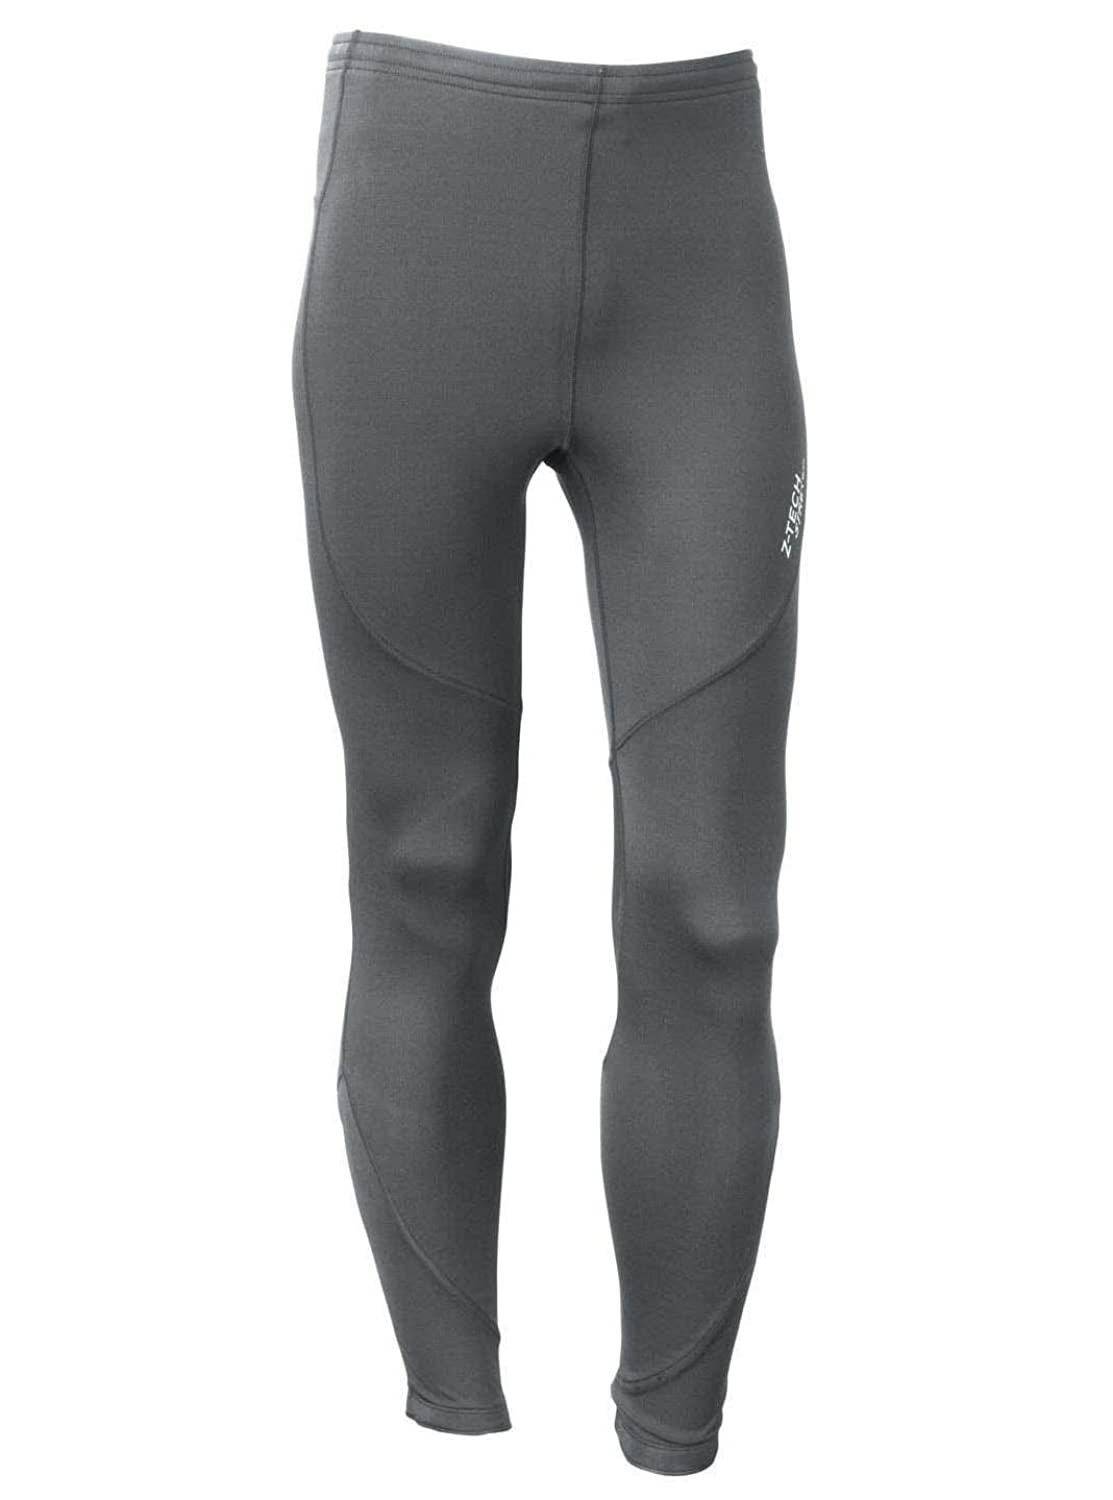 Spiro Sprint Pants Mens Grey M